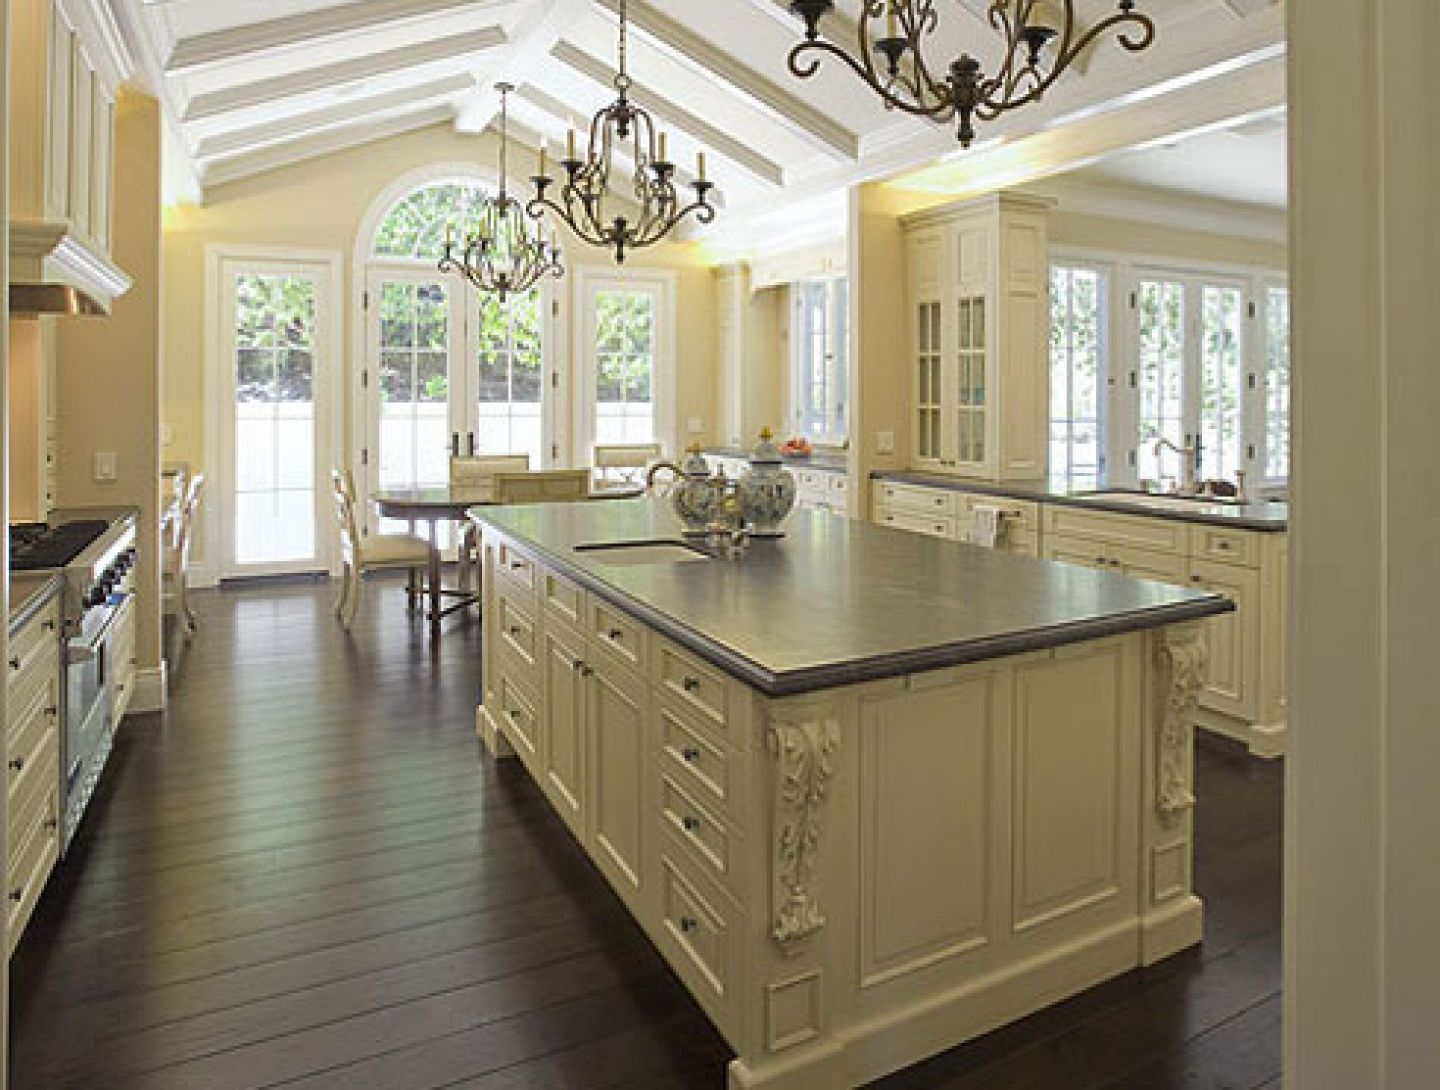 Pictures of french country kitchen design french country for Pictures of country kitchens